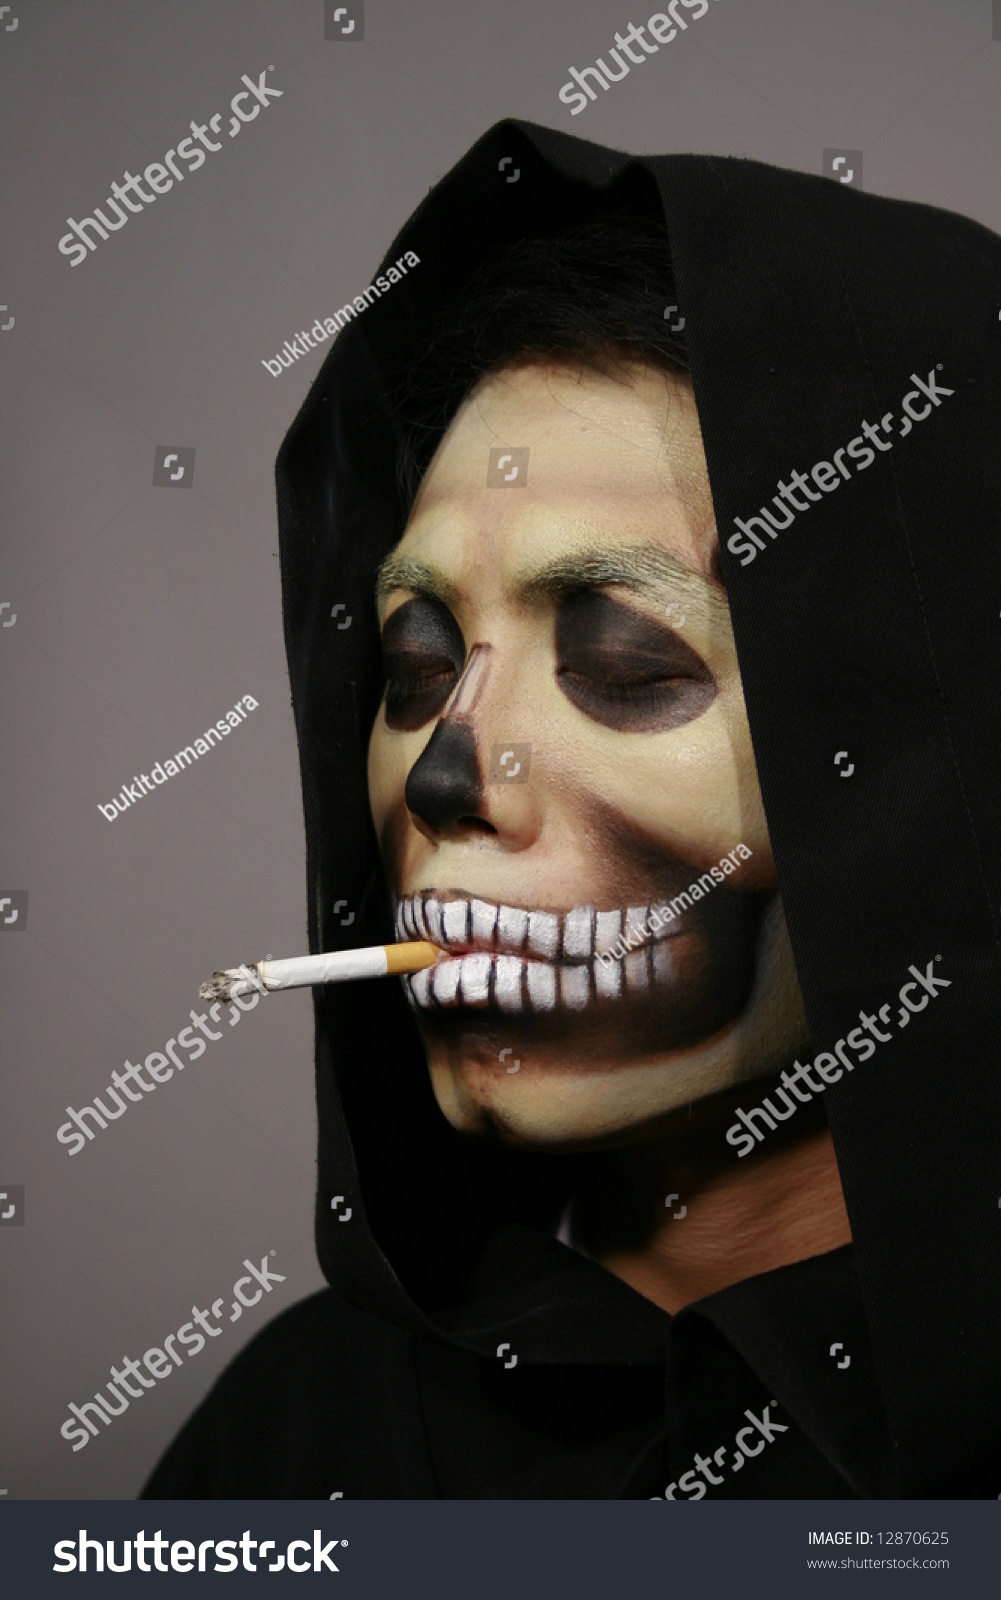 smoking is harmful to health In europe the situation was similar including the warning on cigarette packs that smoking is harmful to health and banning smoking in public places these measures are aimed at eradicating this habit as bad the risks of passive smoking.